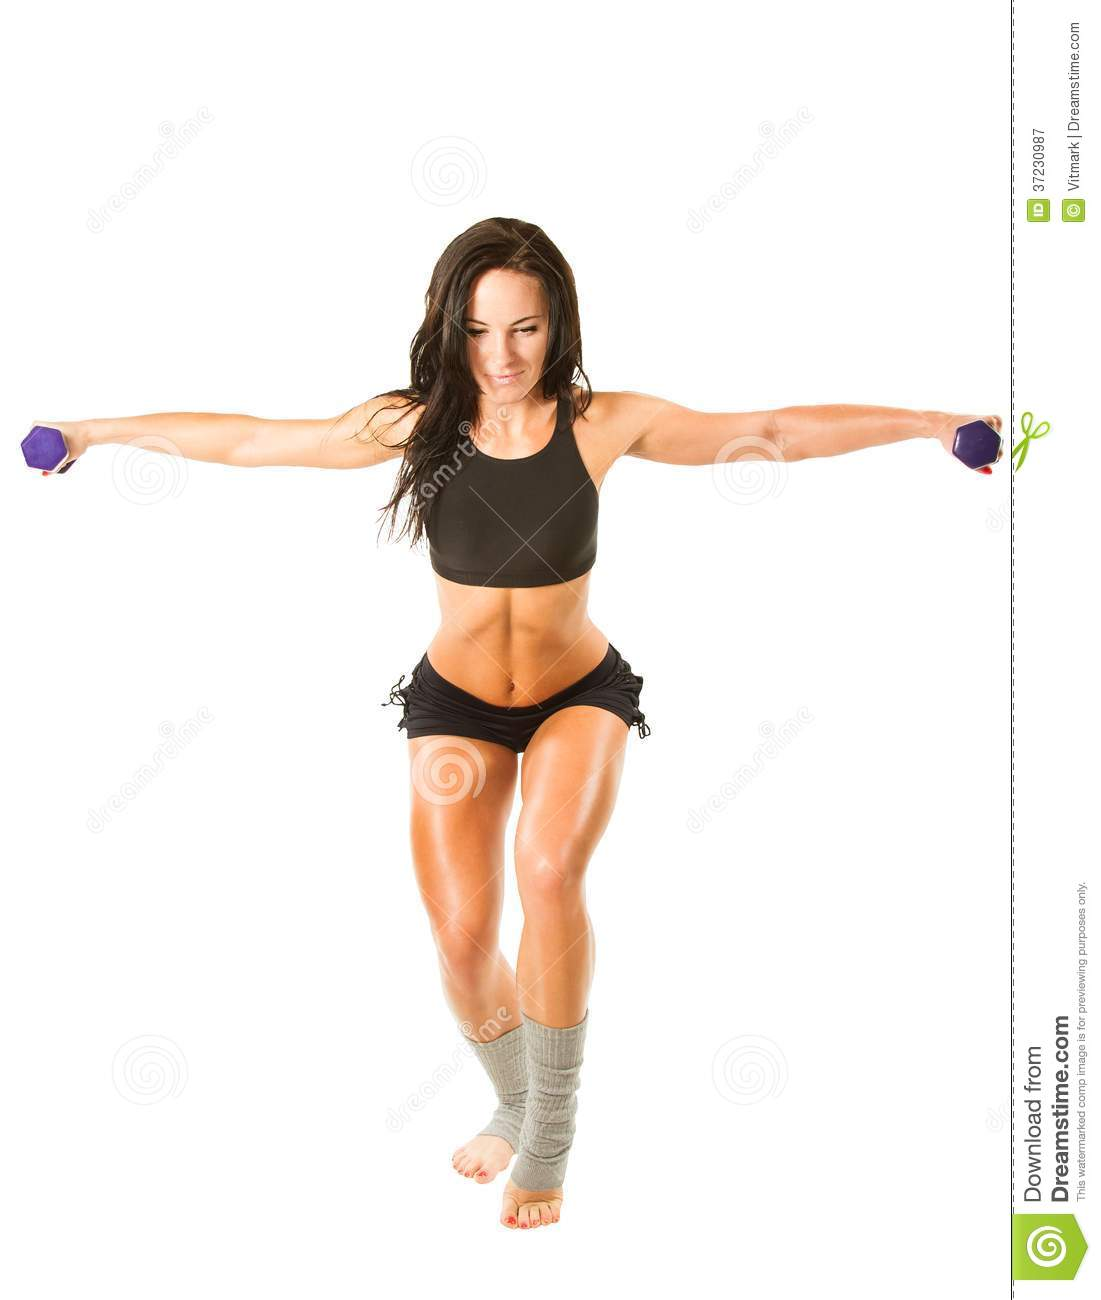 Young yoga woman doing exercise in yoga pose on isolated white background. Concept sports, fitness